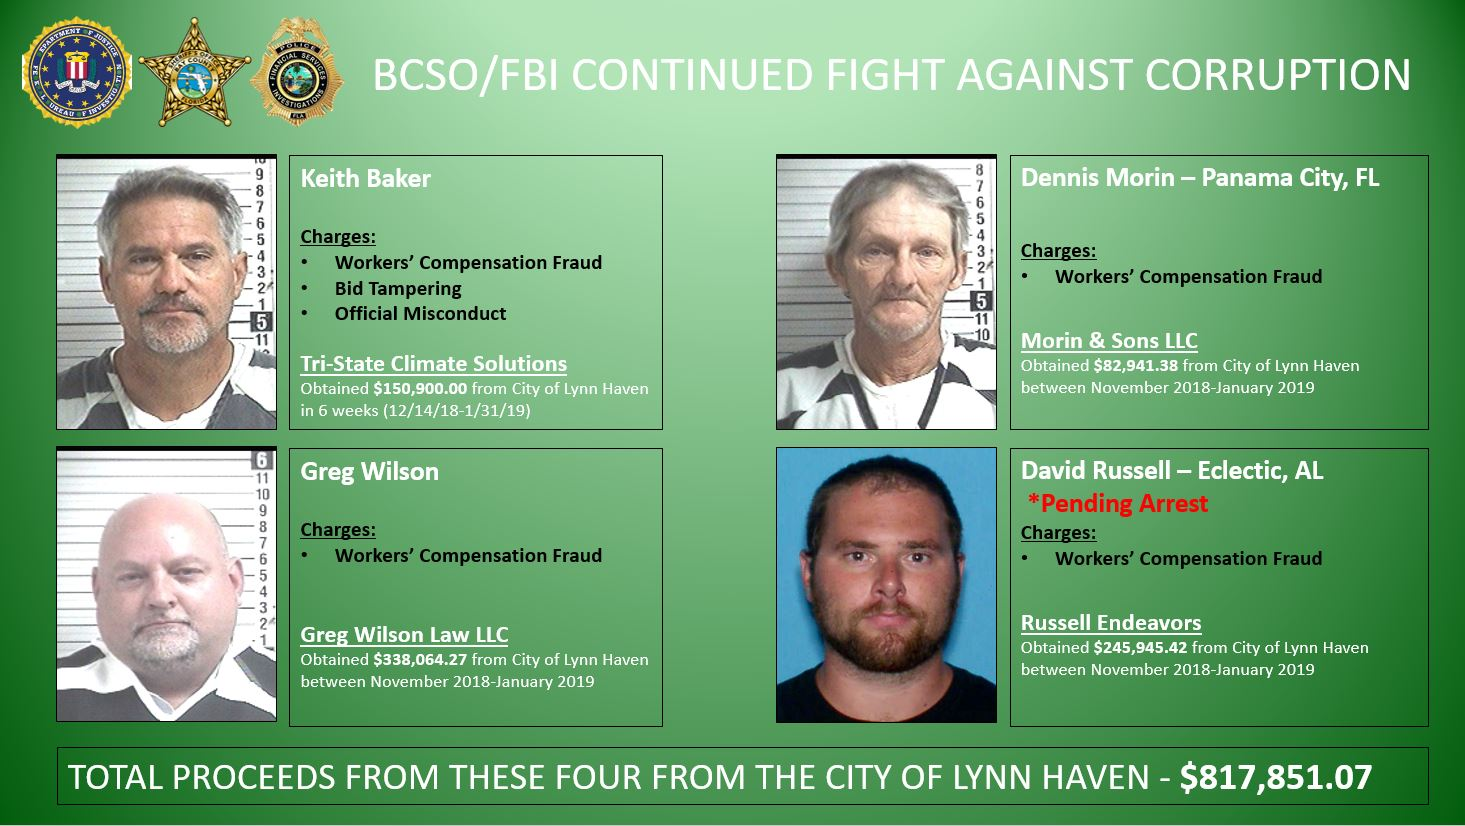 Keith Baker, Dennis Morin, Greg Wilson, and David Russell mugshots and charges